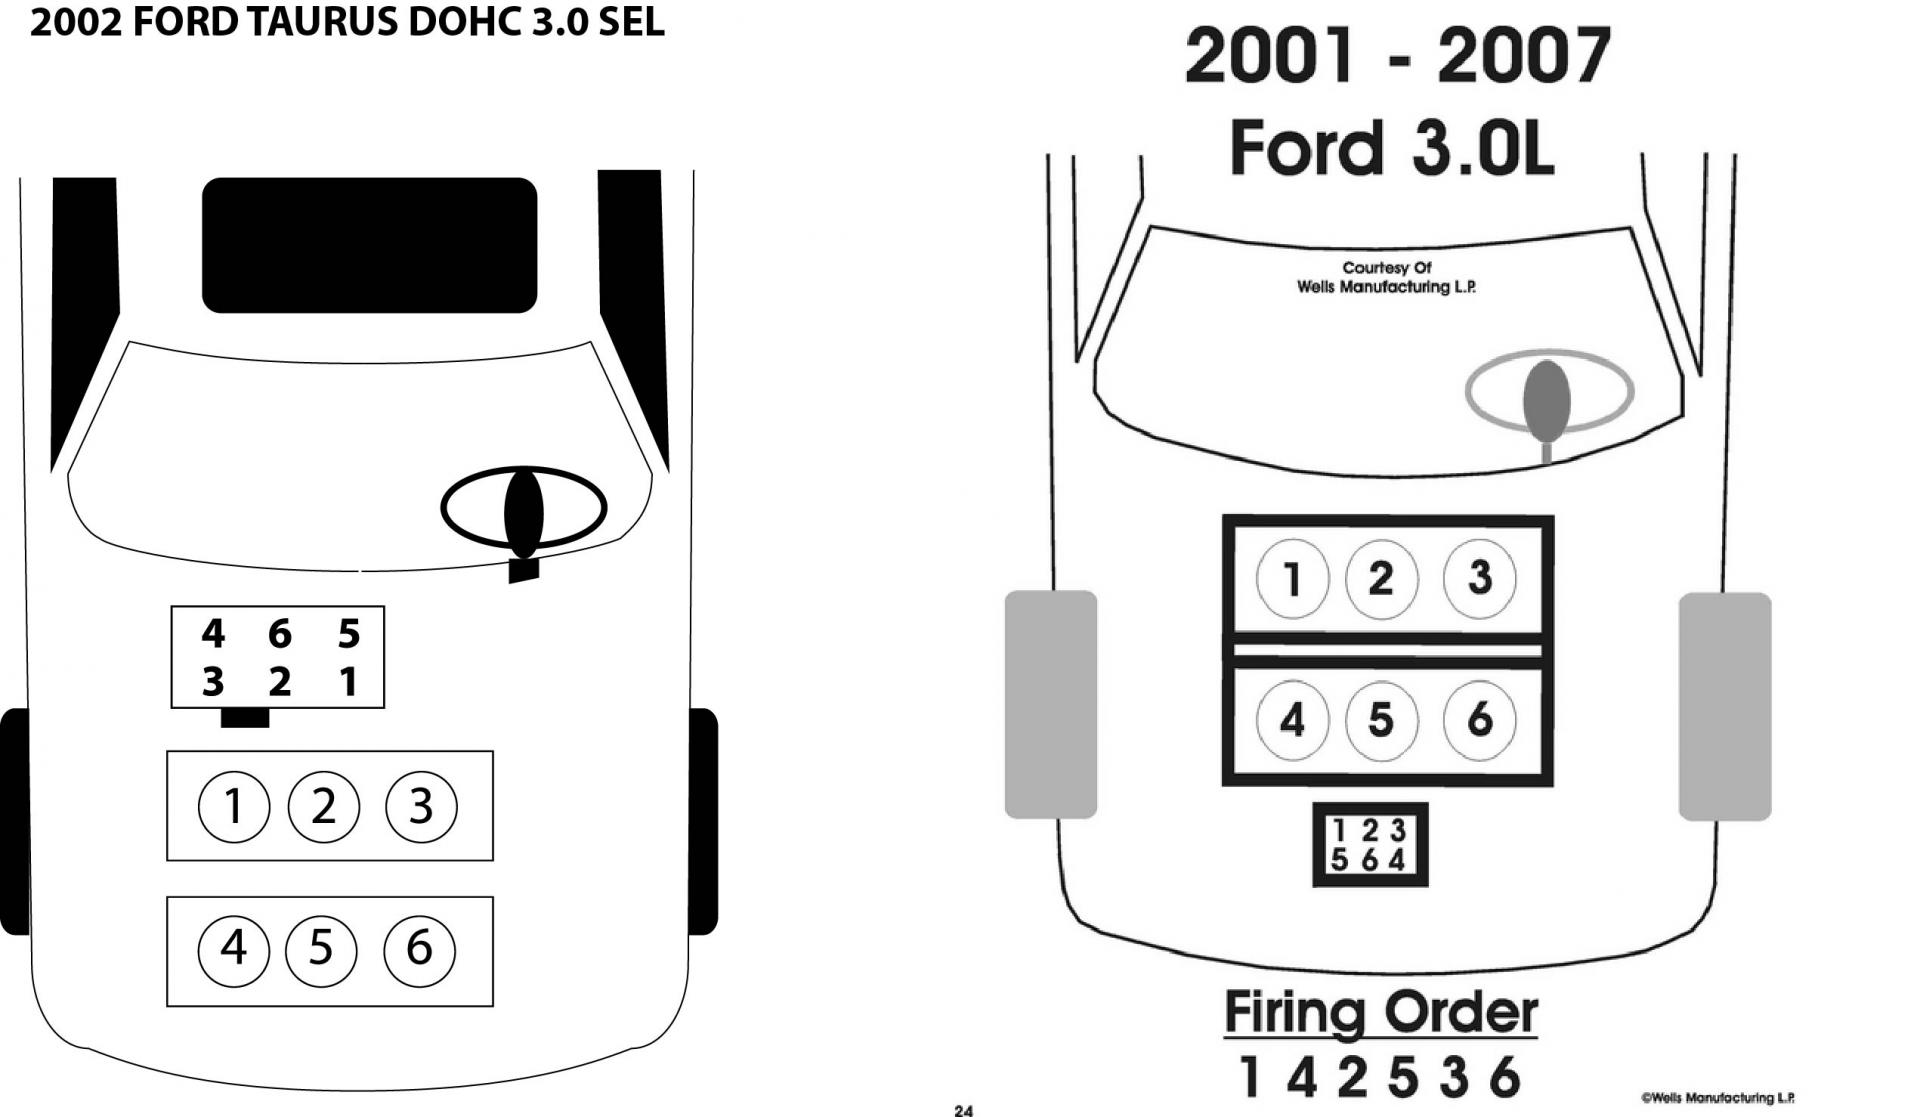 155305d1441679964 2002 taurus engine light misfire 302 303 taurus dohc 2002 sel firing order 2002 taurus engine light misfire 302 303 page 4 taurus car 2004 ford taurus wiring diagram spark plug at bayanpartner.co